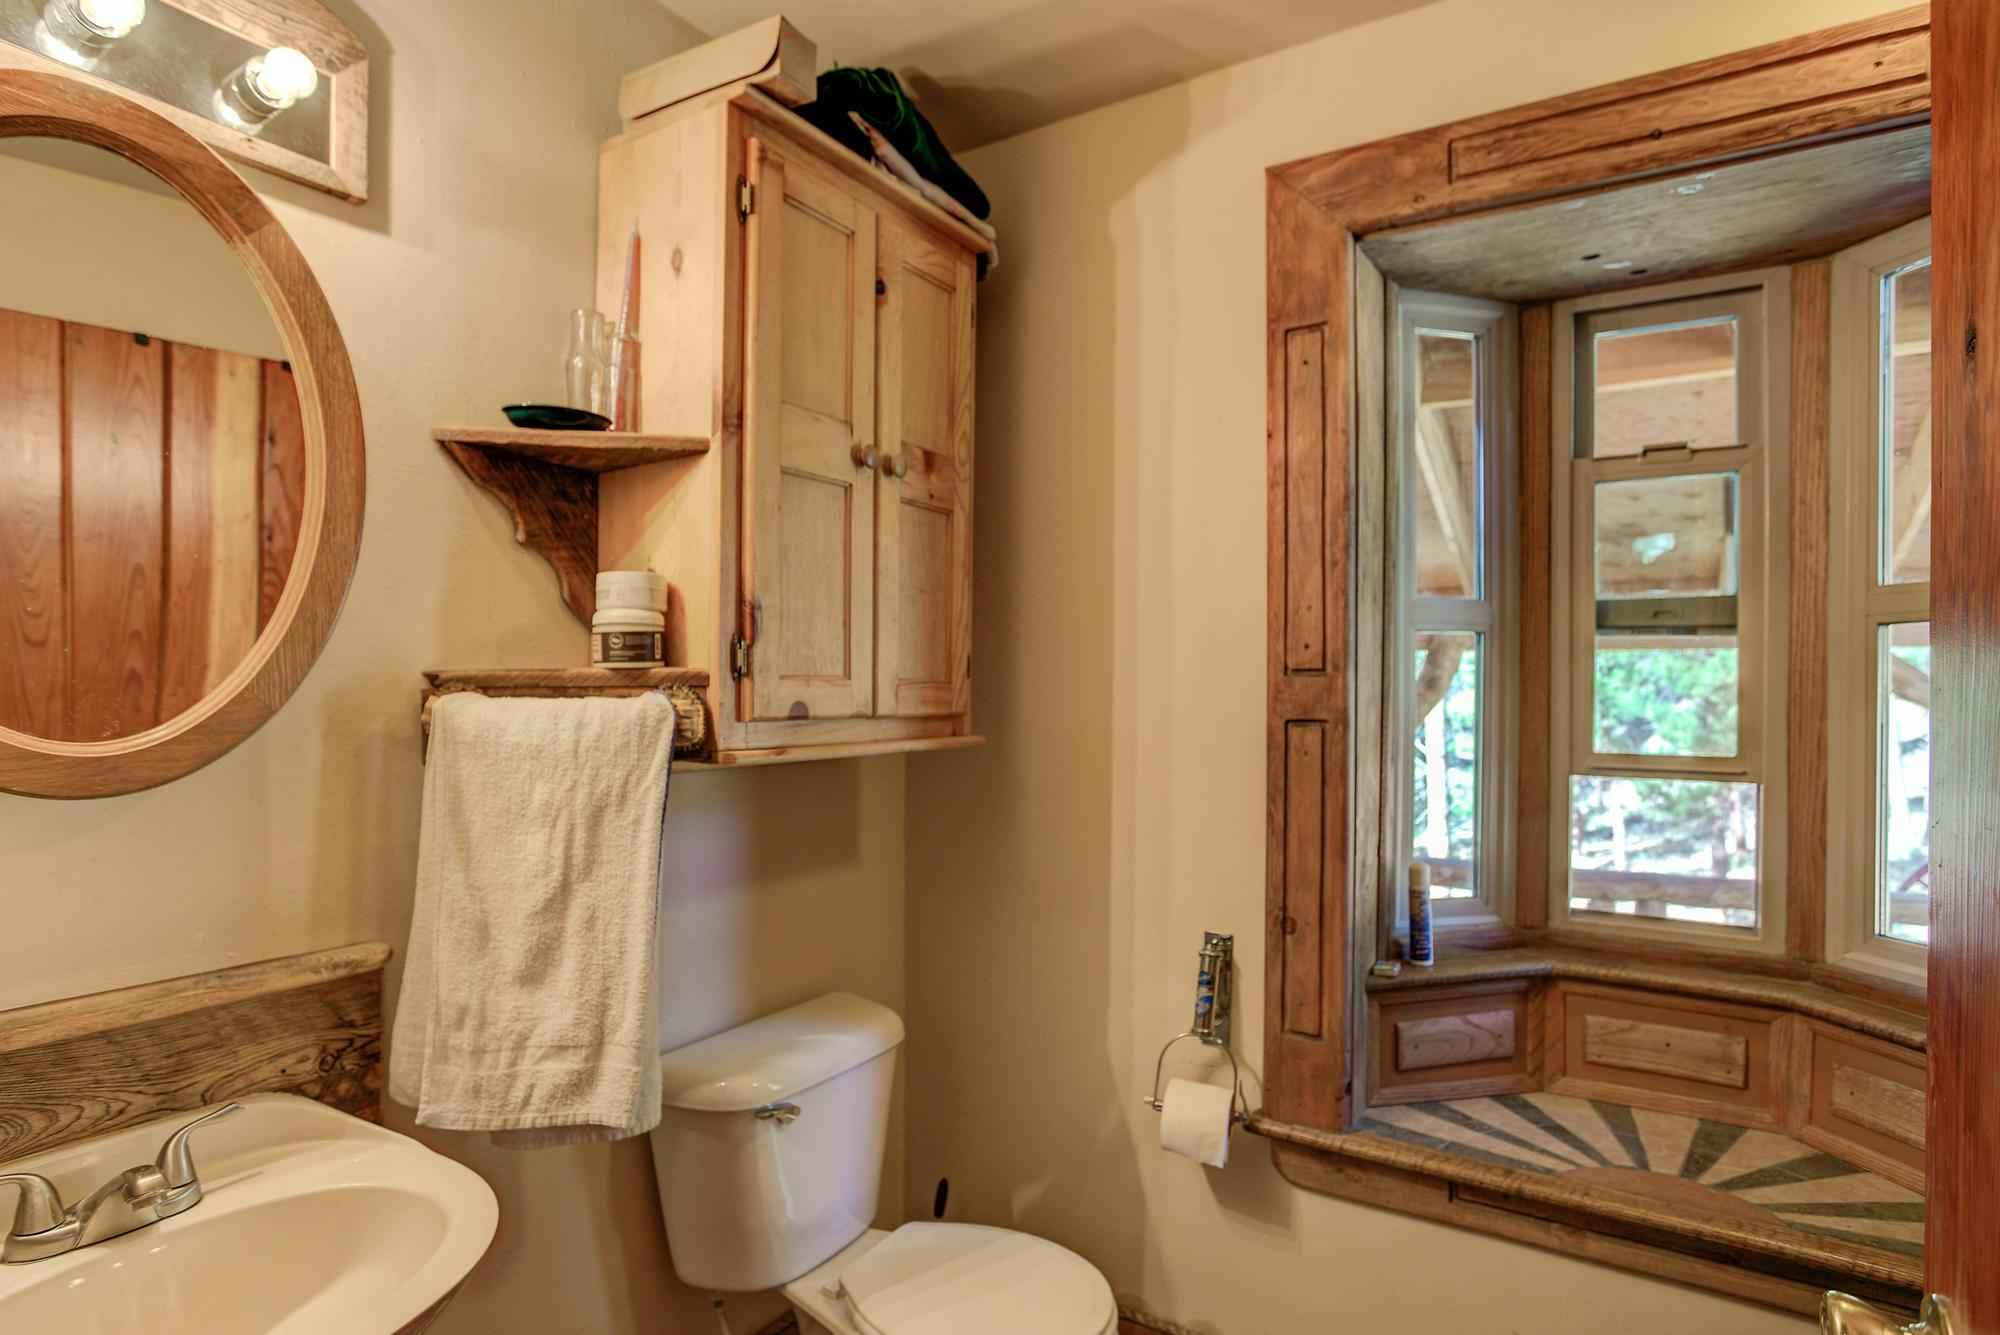 Listassistimage-228985-web_ready-29462%2bhigh%2broad_bathroom-2000x2000